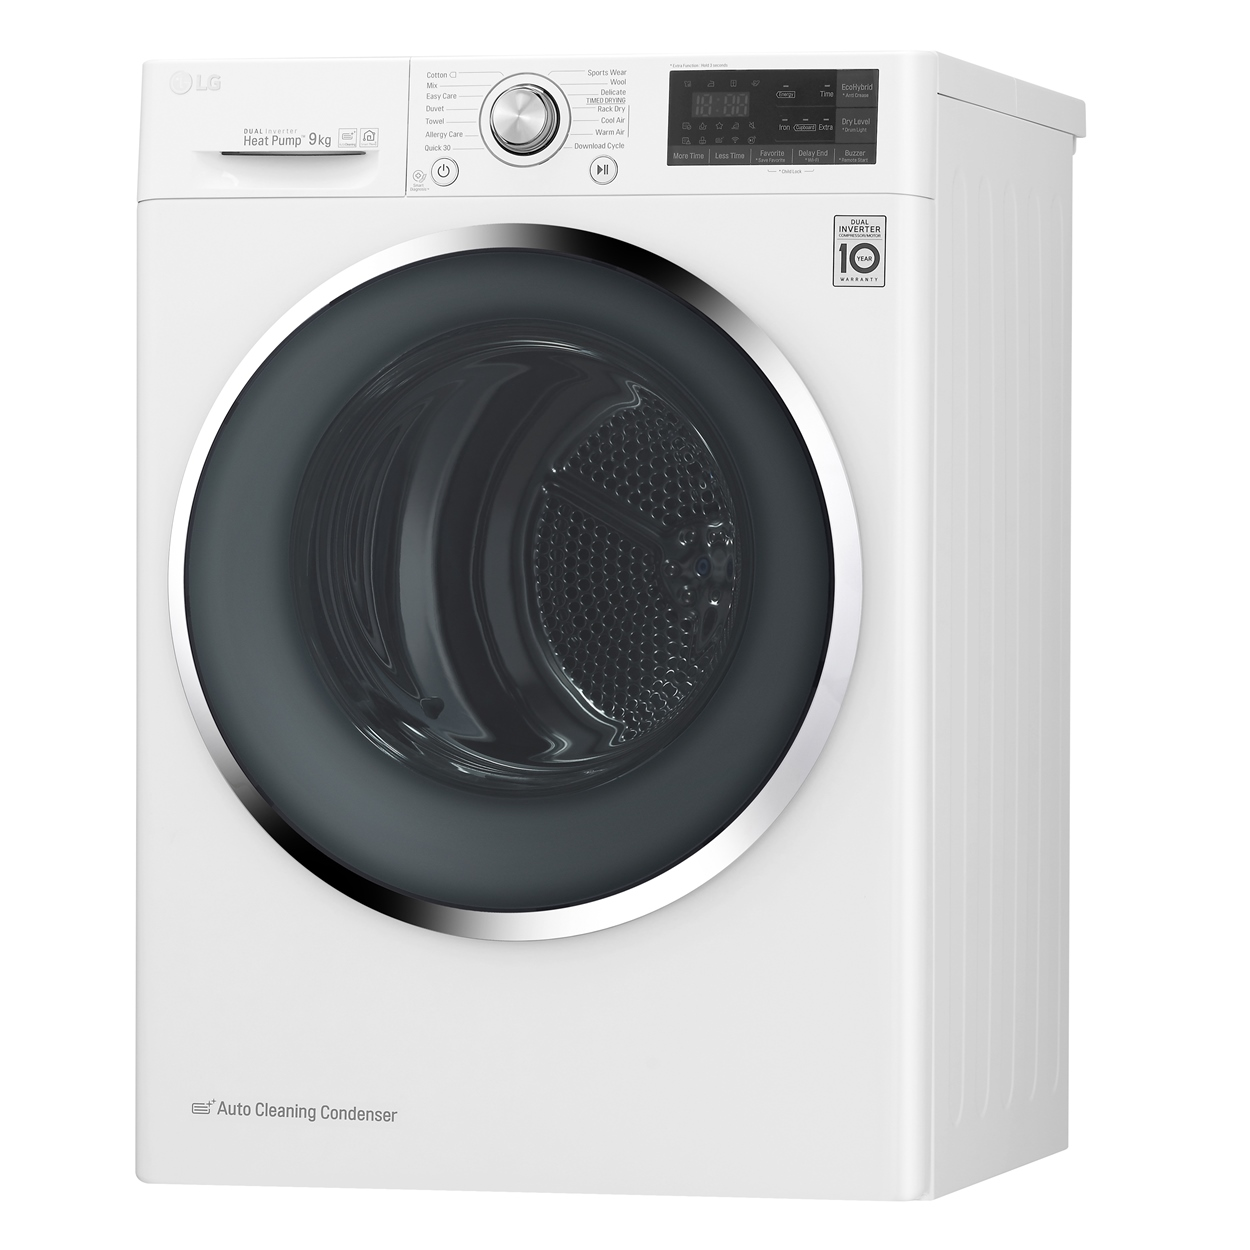 LG New Dryer prepped to wow 2